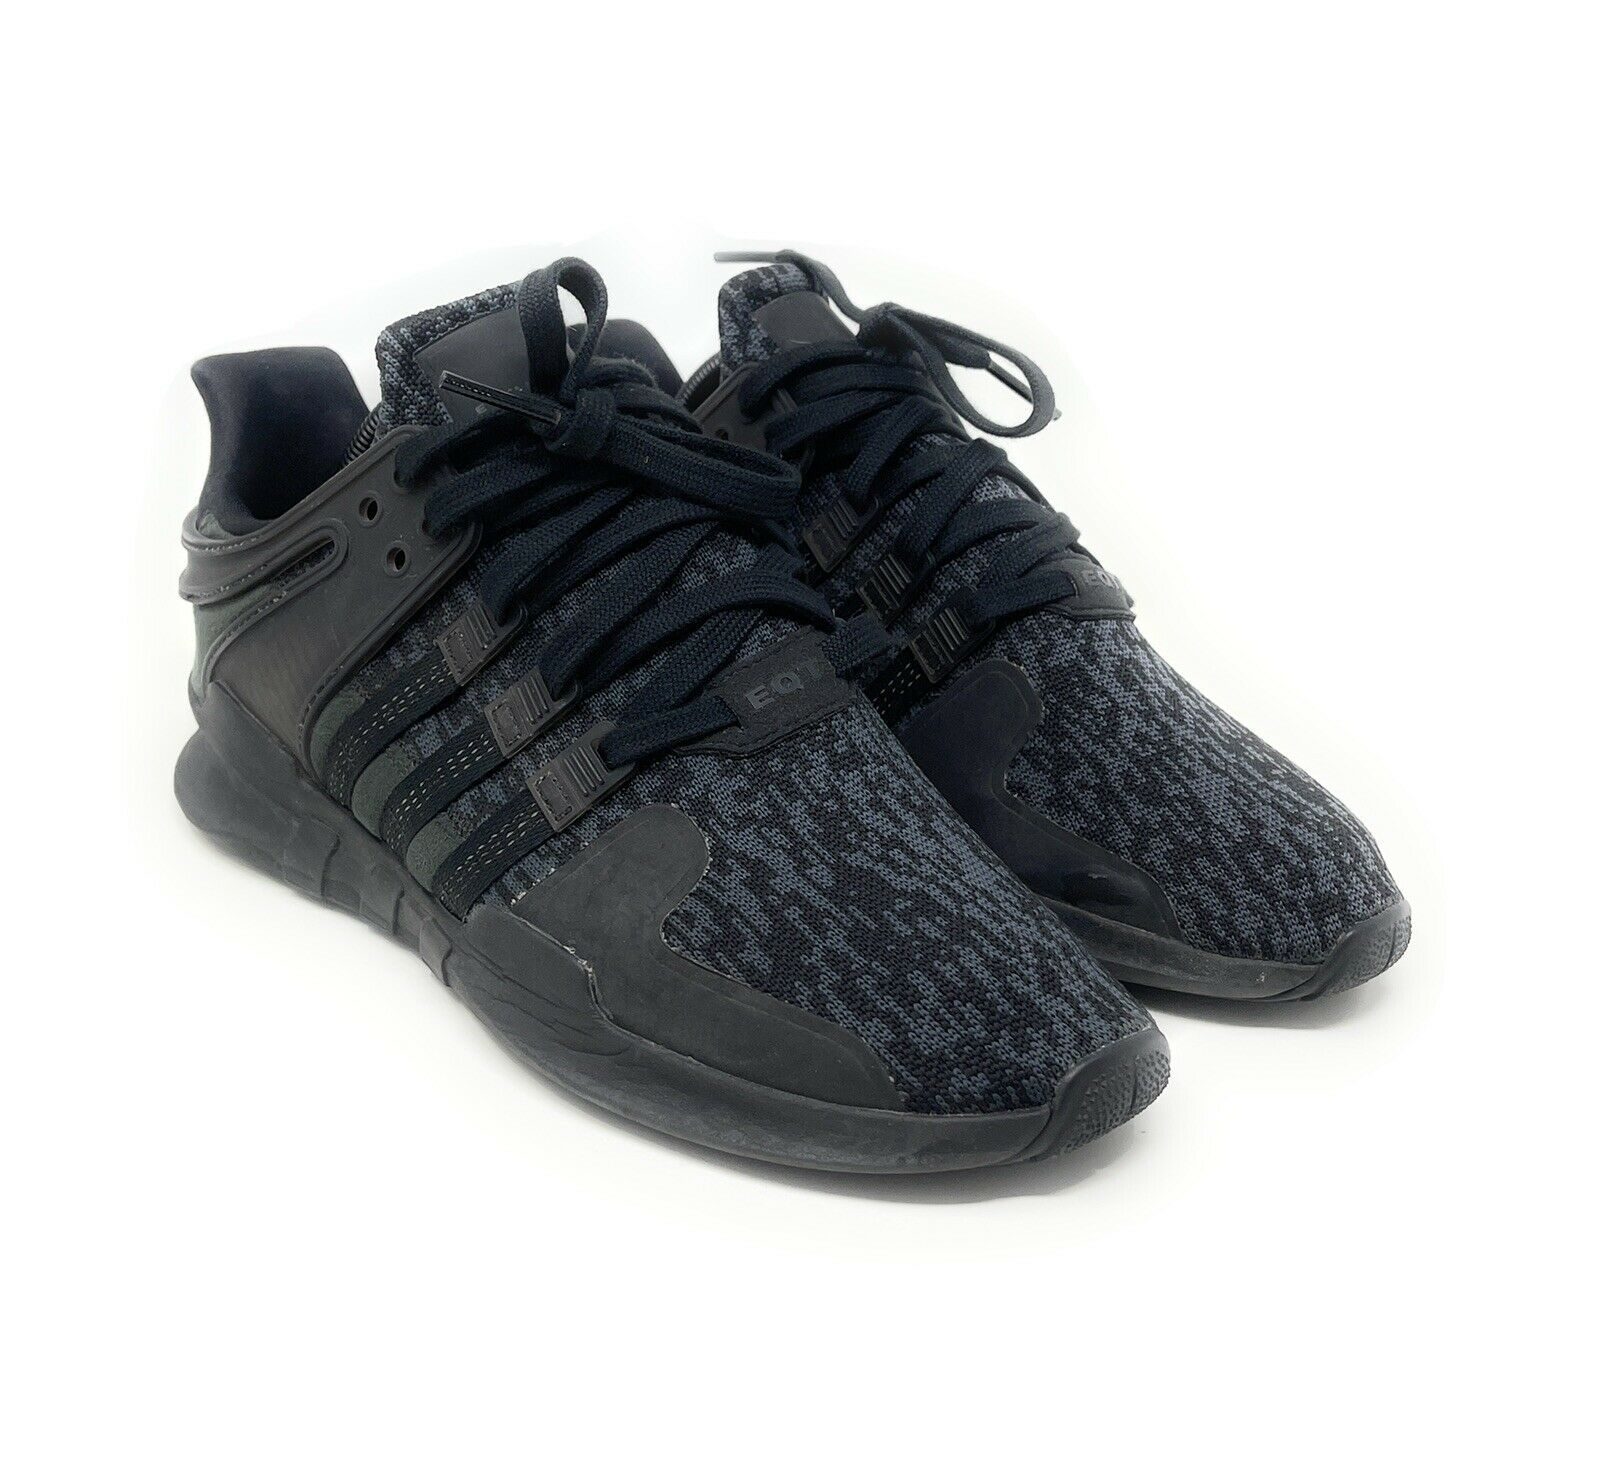 Adidas EQT Support Adv Mens BY9589 Black Pixel Knit Athletic Shoes Size 9